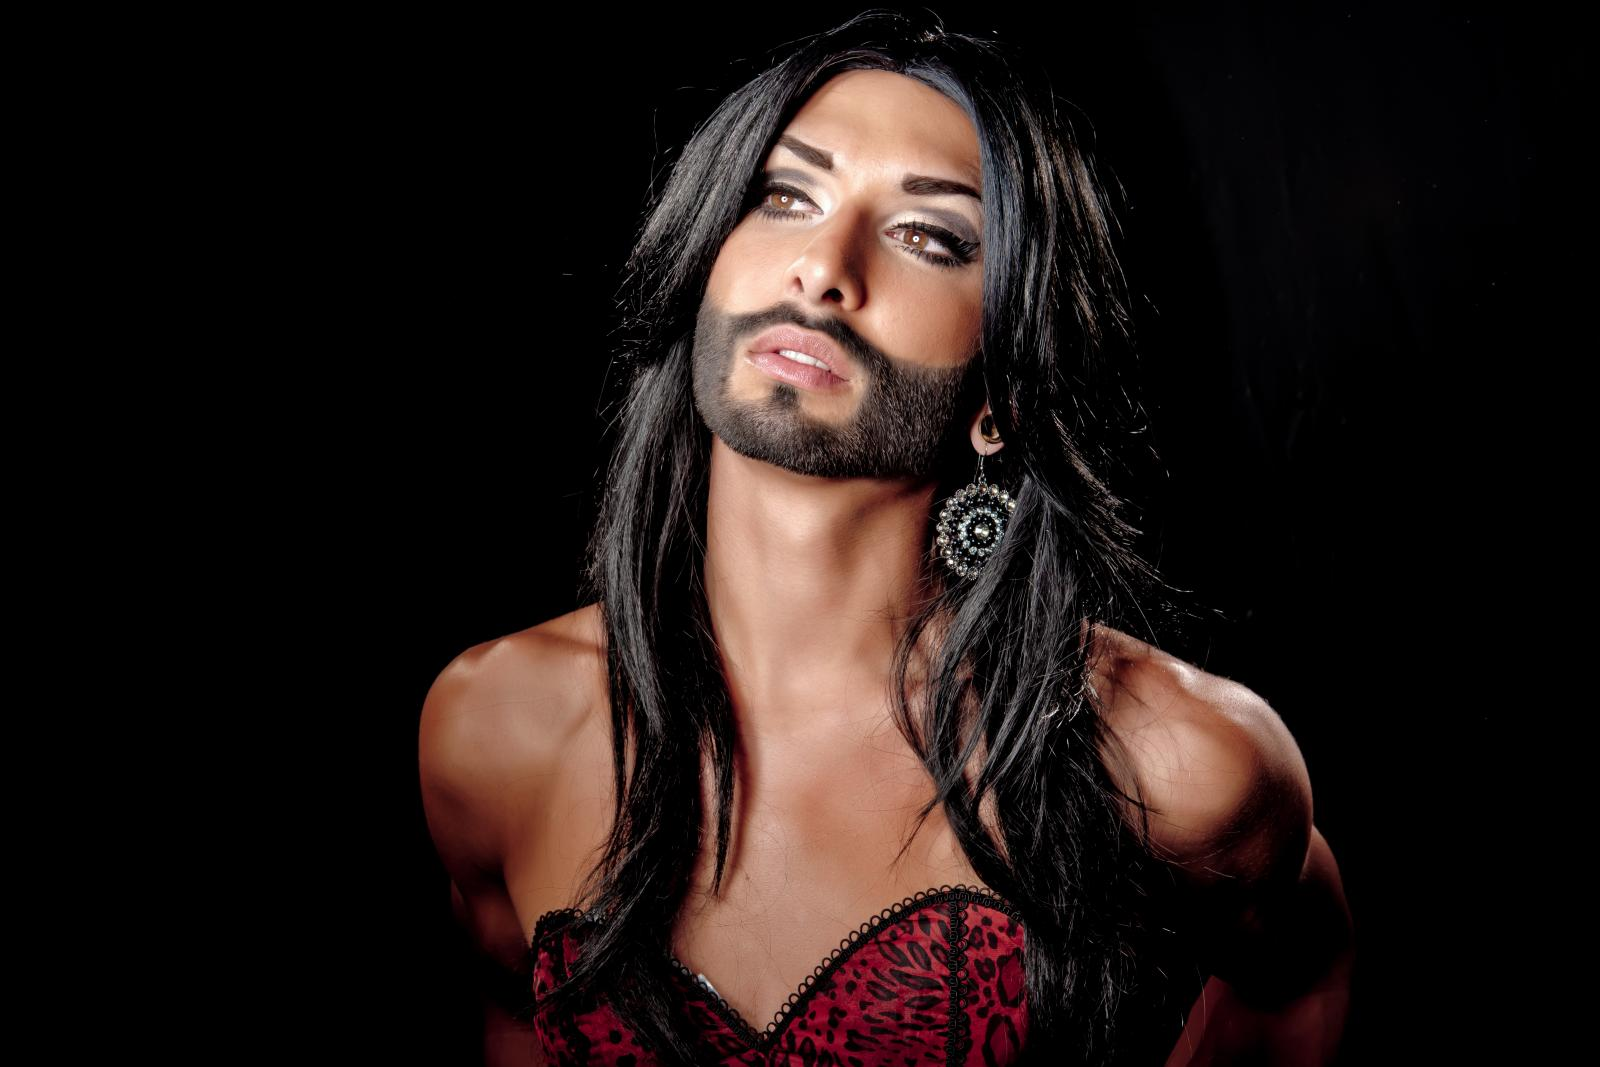 Conchita wurst and dana international in eurovision first star - Conchita Wurst Photograph Courtesy Of Imgur Com